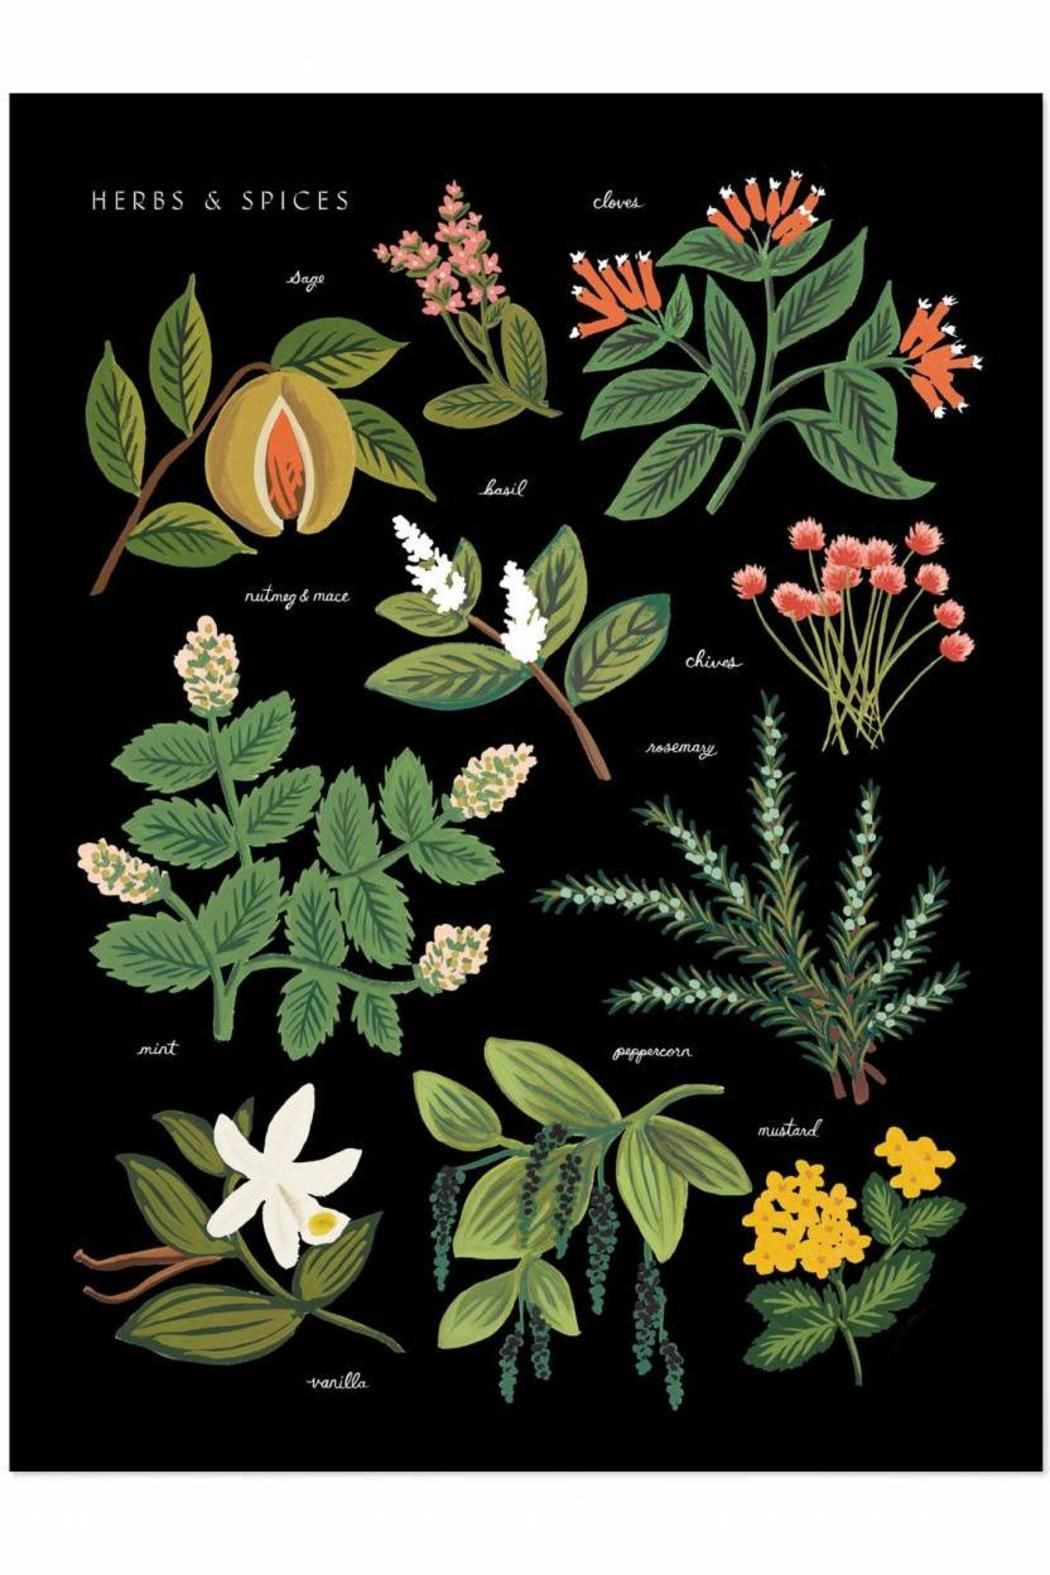 """18 x 24"""" Print Illustrated Art Print created from an original gouache painting by Anna Bond.  Herbs & Spices Print by Rifle Paper Co. . Home & Gifts - Home Decor - Wall Art Austin Texas"""